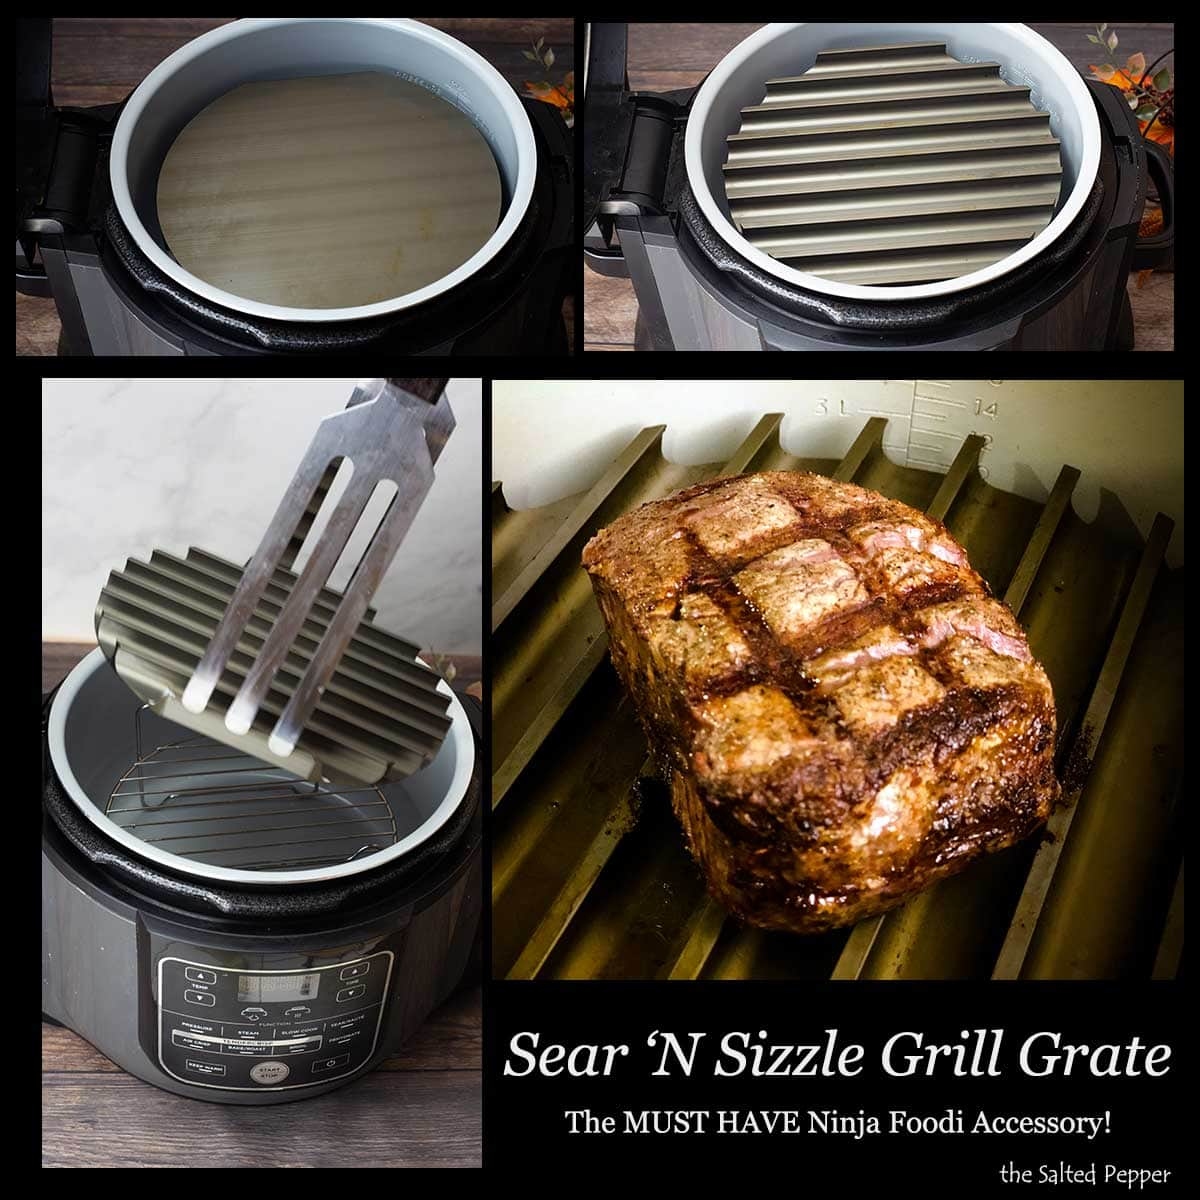 Sear 'N Sizzle graphic